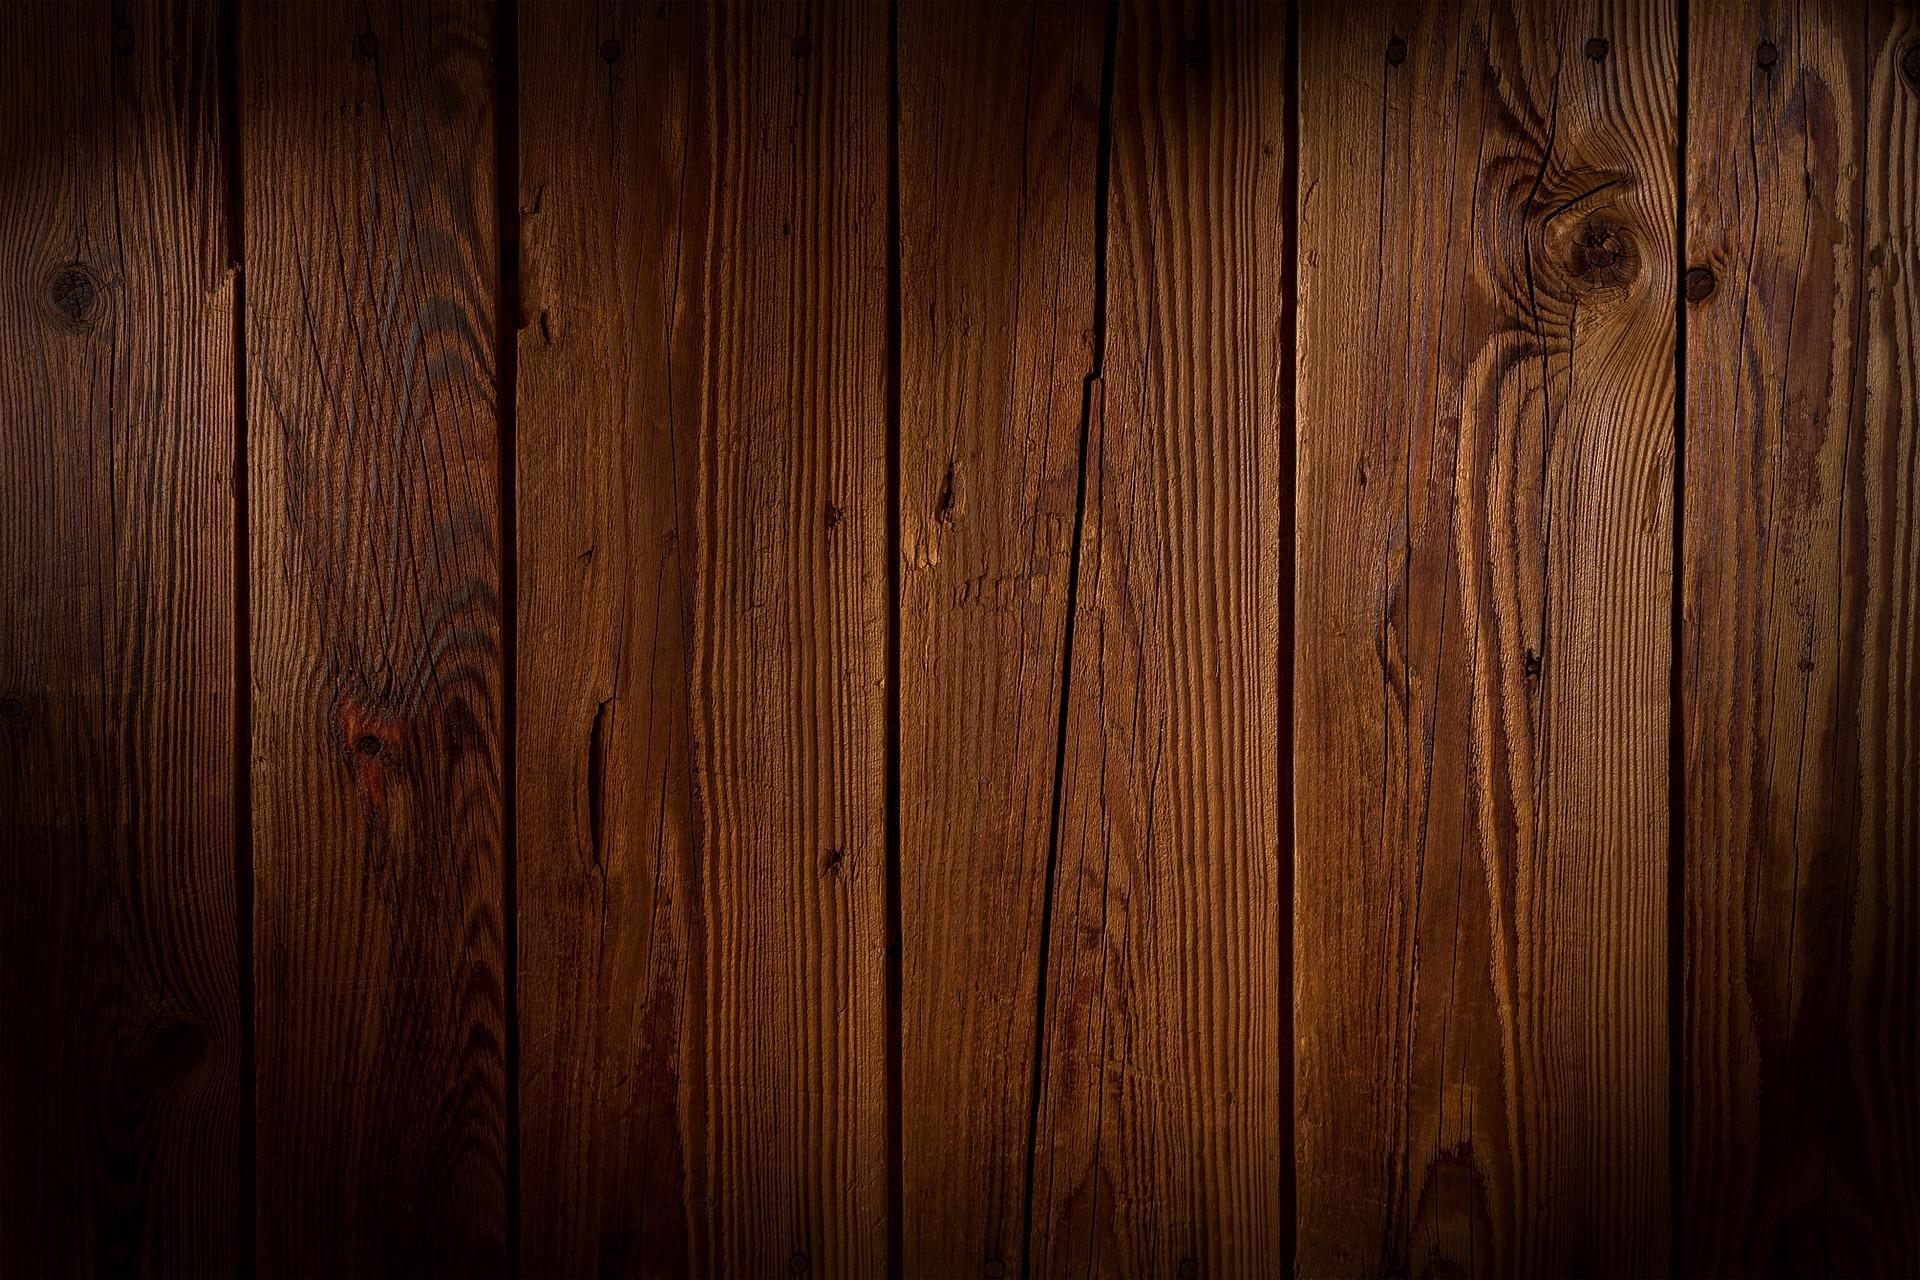 Wood Wallpapers Hd For Android Apk Download